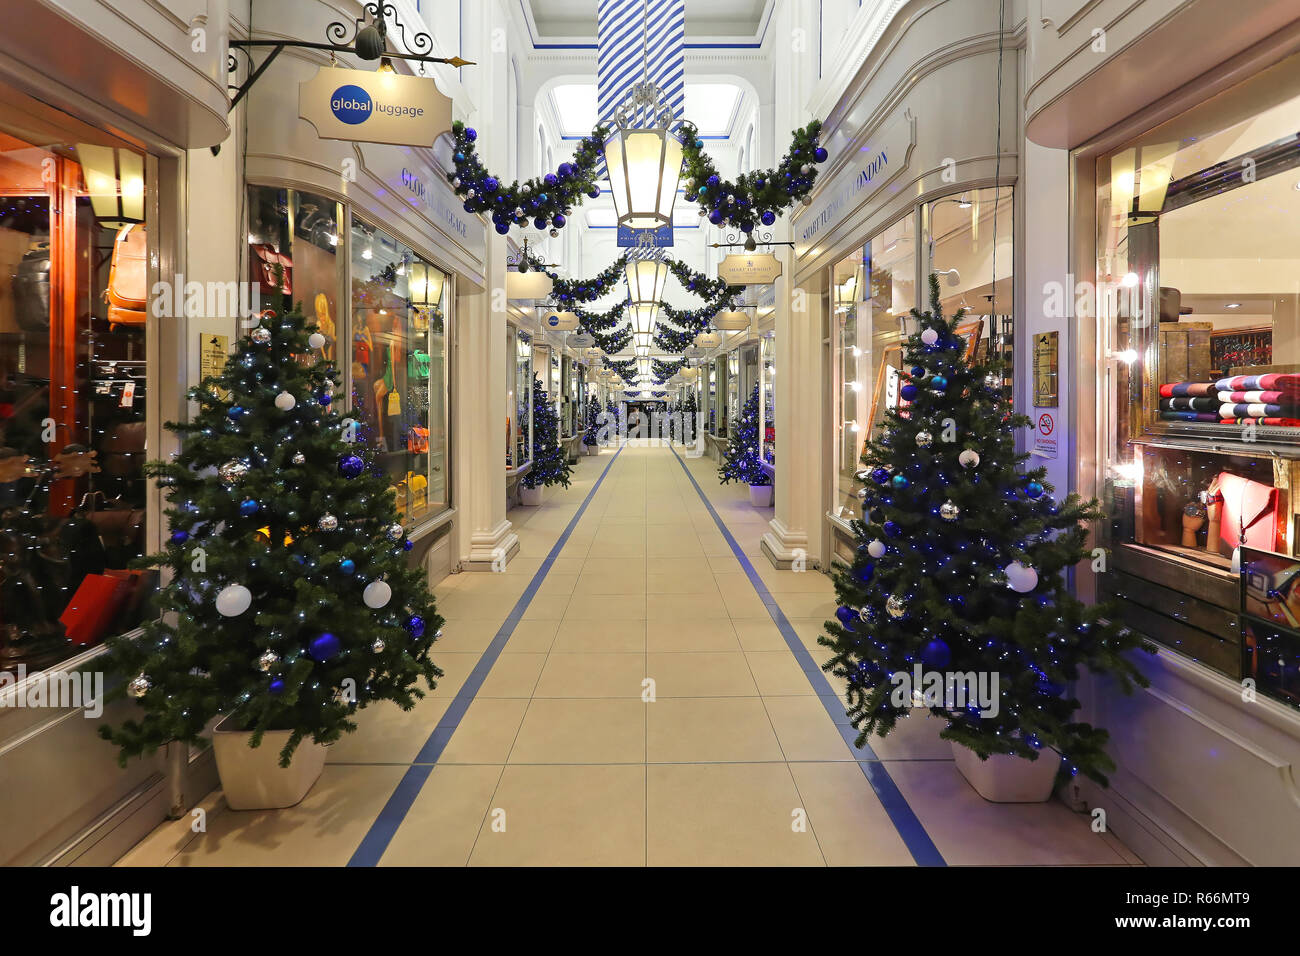 LONDON, UNITED KINGDOM - NOVEMBER 20: Christmas decoration at Princes Arcade in London on NOVEMBER 20, 2013. Princes Arcade is a boutique shopping cen Stock Photo